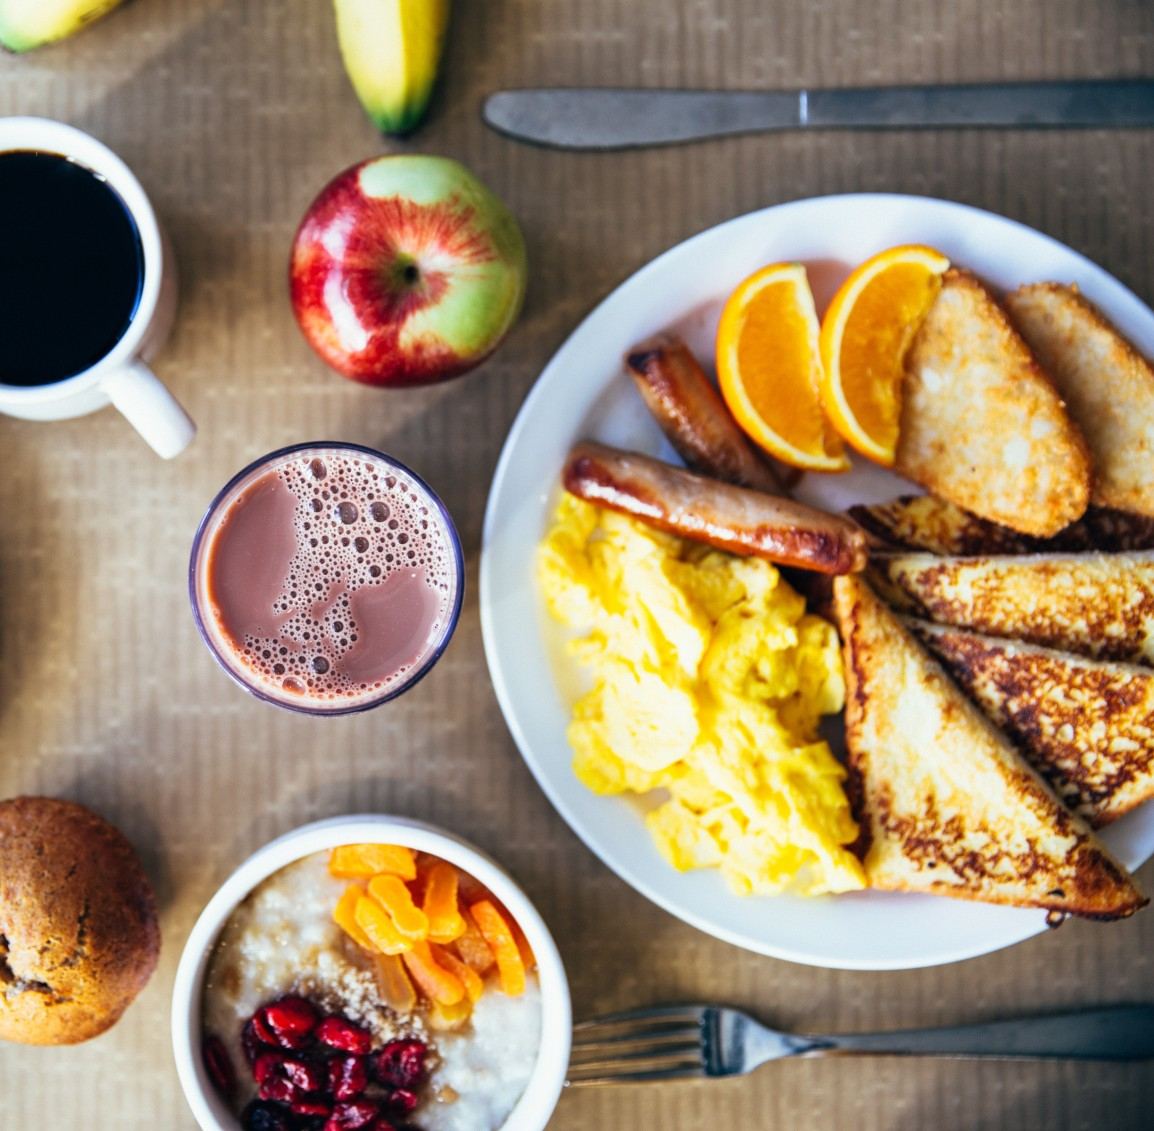 Want a Mouth-Watering Breakfast? 25 Popular Plant-Based Food Companies That Will Make You Drool